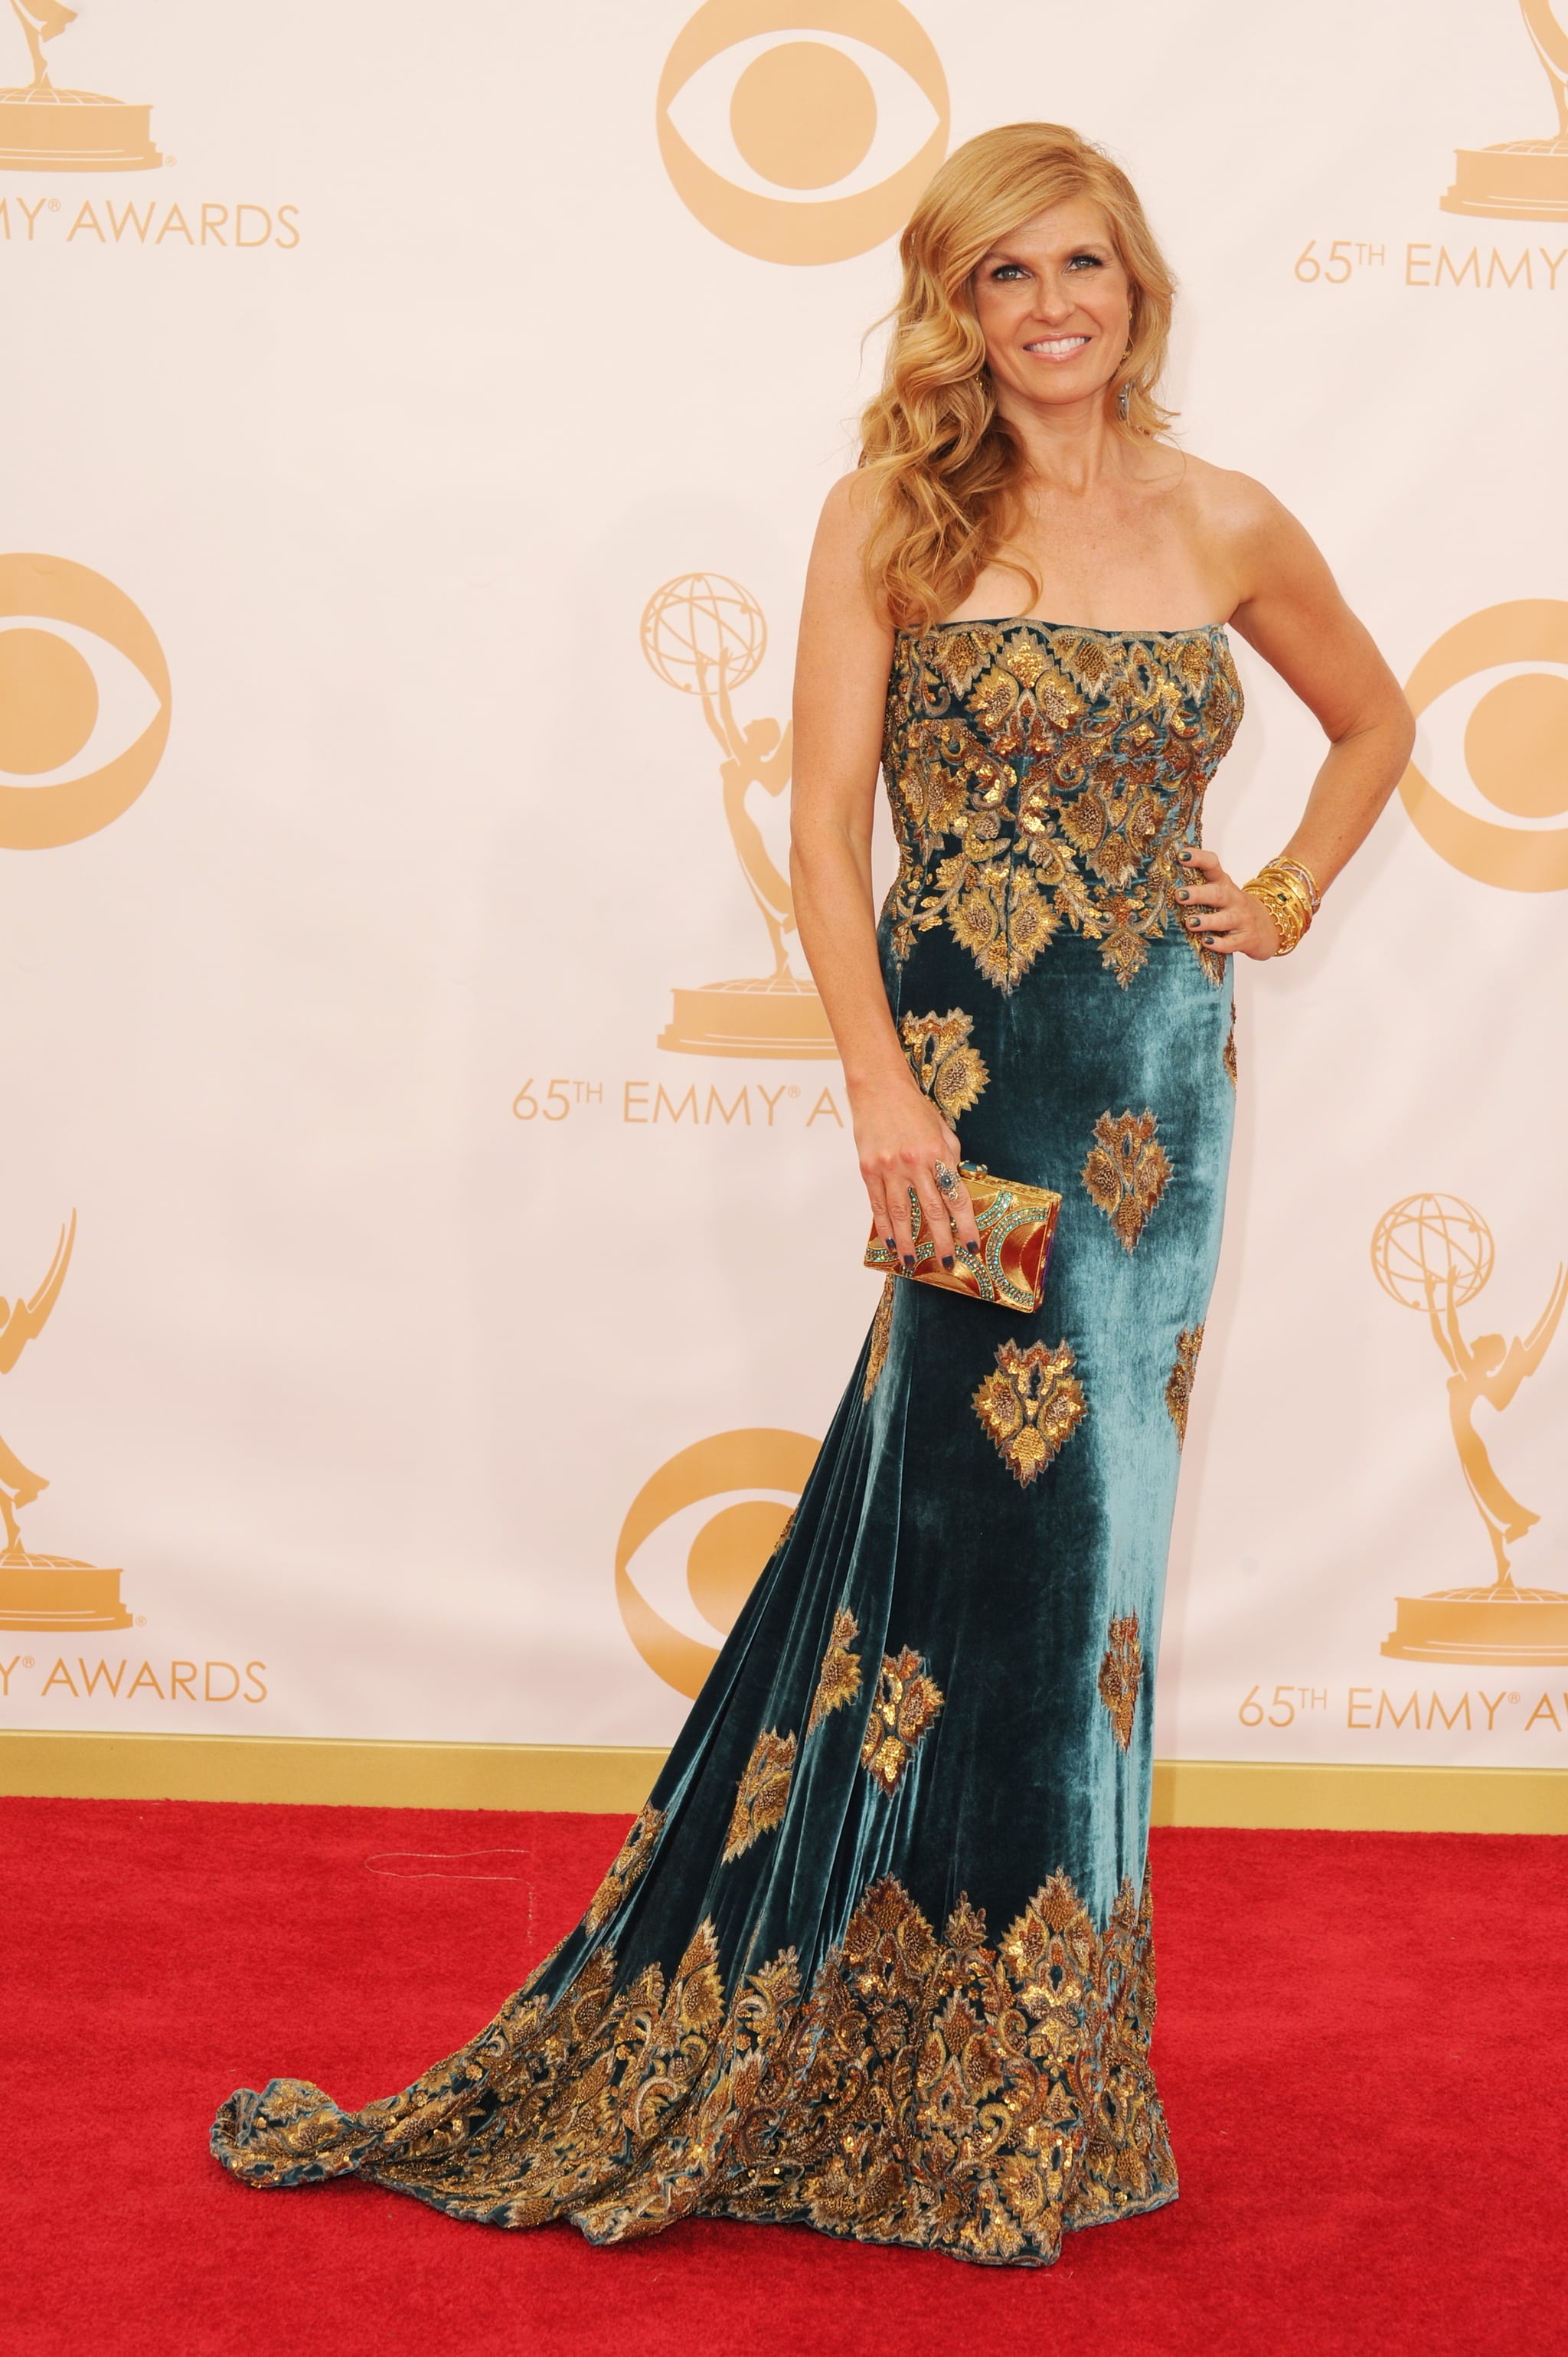 Connie Britton went for luxury in a velvet Naeem Khan Fall 2013 gown embroidered with gold and finished it off with Cathy Waterman jewels and a Stuart Weitzman clutch.